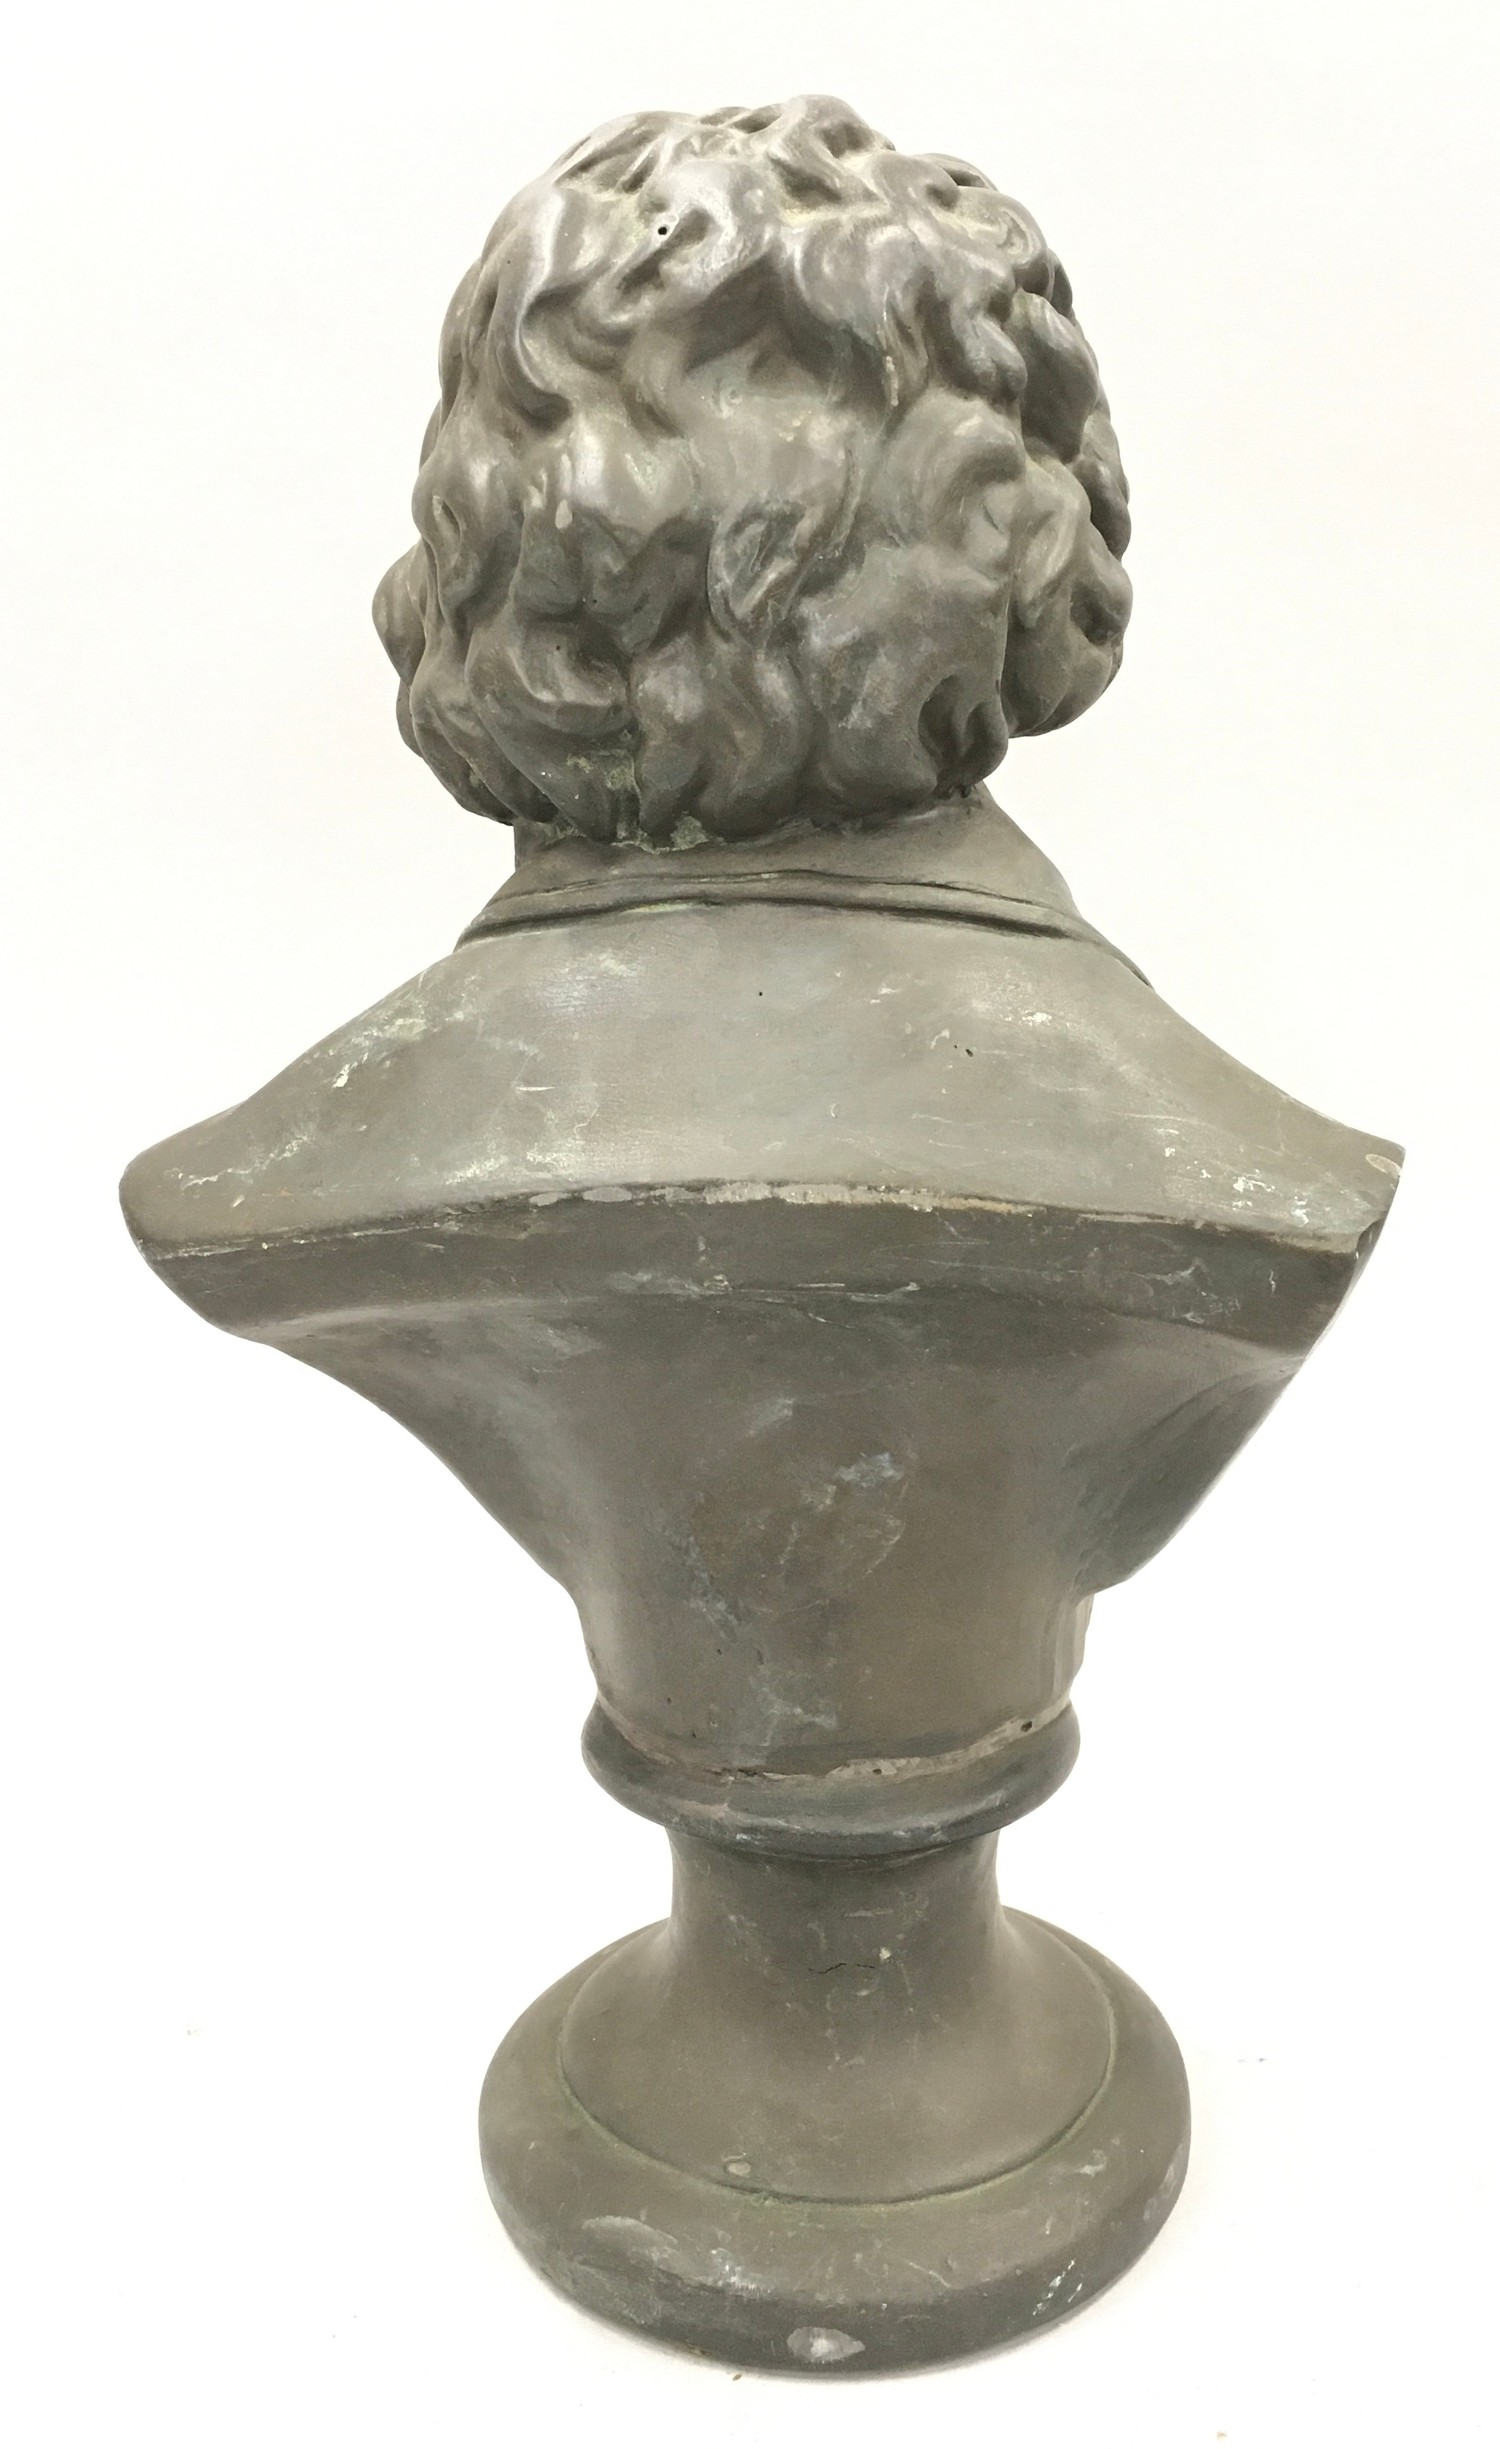 Cast metal bust of Beethoven 33cm tall - Image 3 of 4